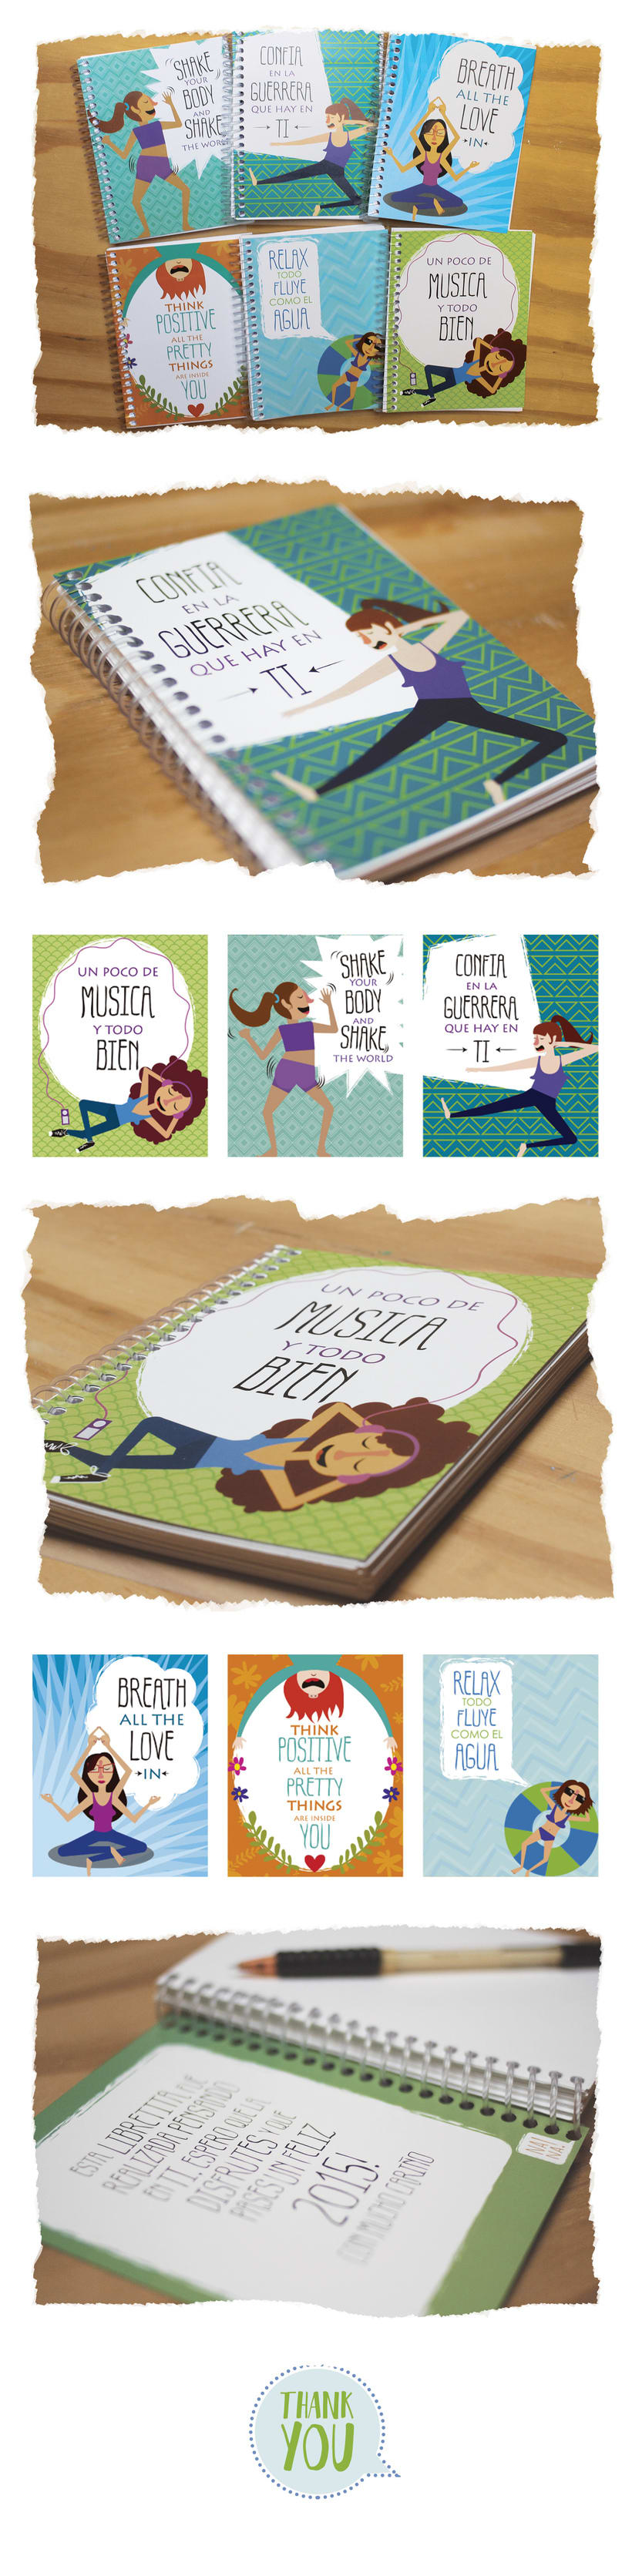 Libretas 2015 | Notebooks 2015 -1